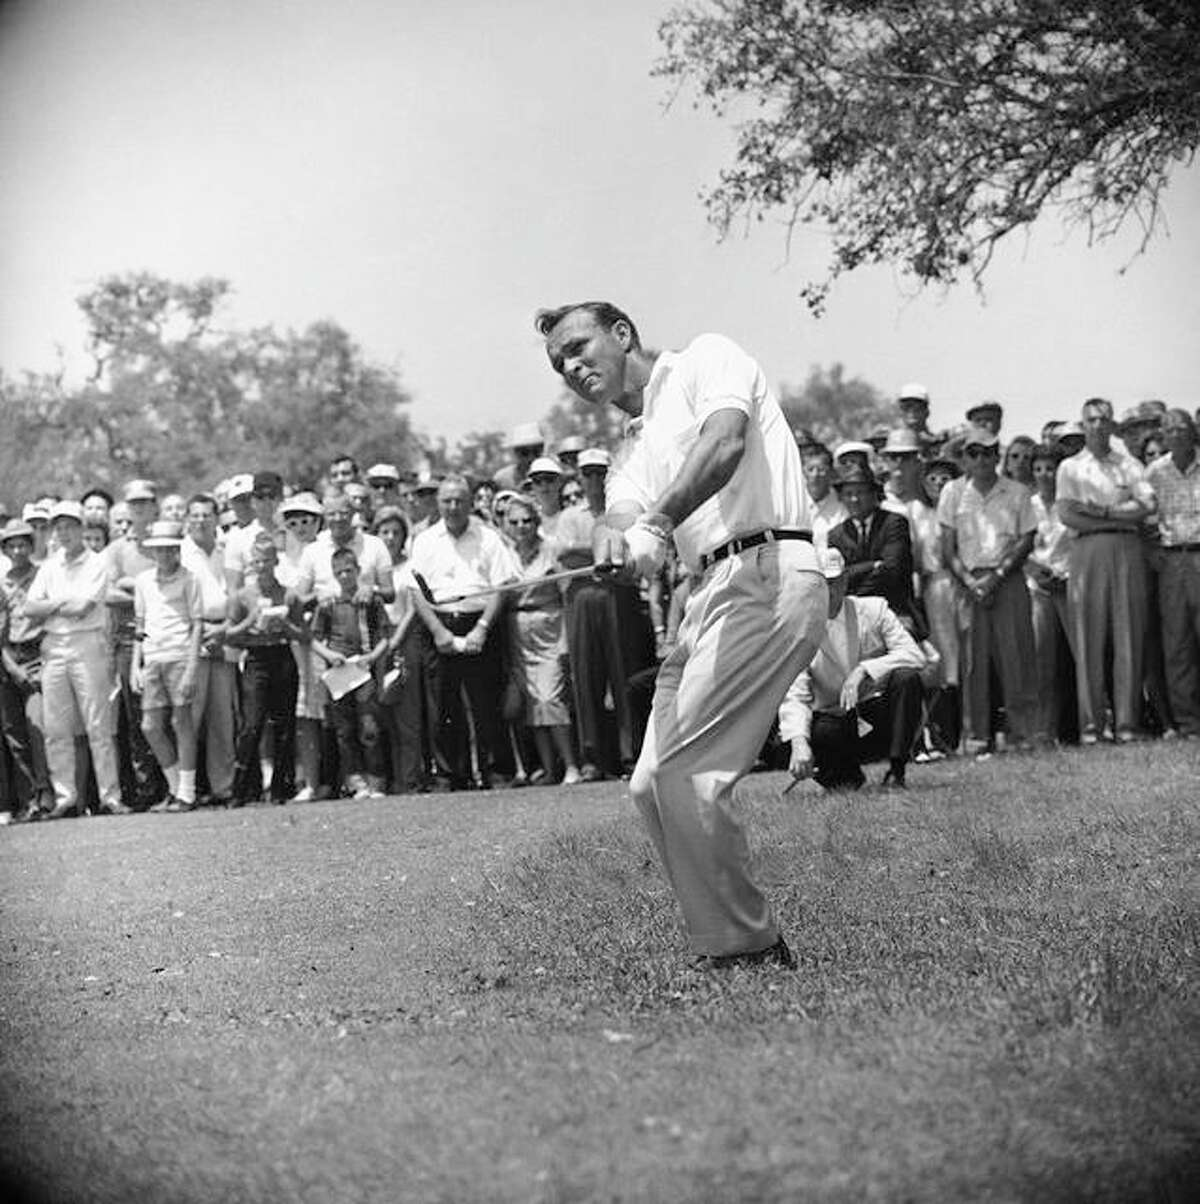 """This April 29, 1962, file photo shows Arnold Palmer, lifting an iron shot from No. 5 fairway in the final round of the Texas Open in San Antonio. Palmer, who made golf popular for the masses with his hard-charging style, incomparable charisma and a personal touch that made him known throughout the golf world as """"The King,"""" died Sunday, Sept. 25, in Pittsburgh. He was 87."""